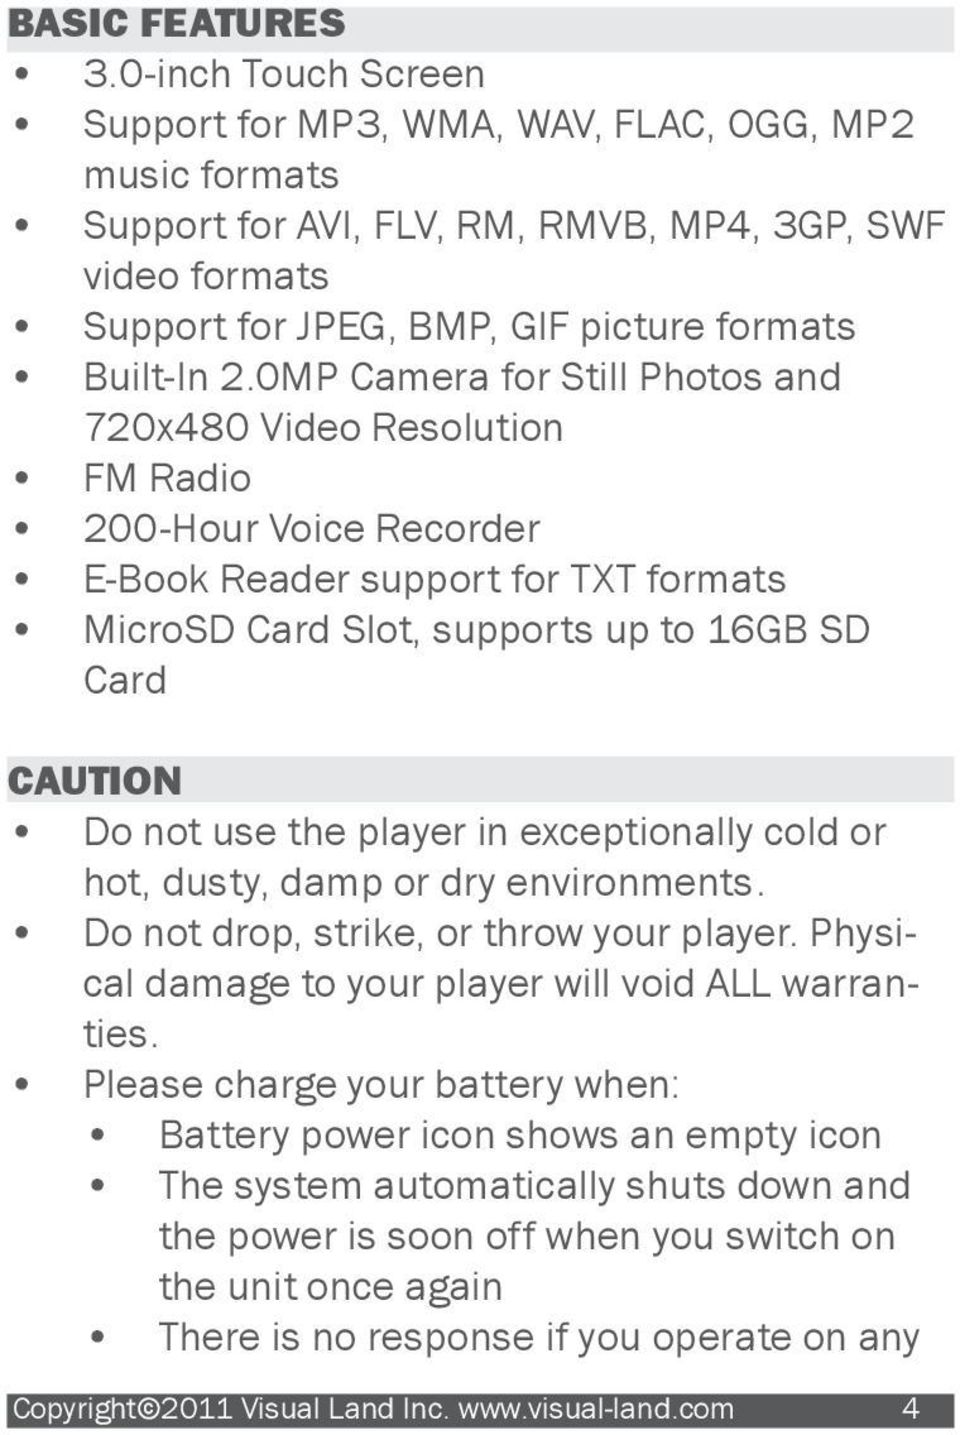 0MP Camera for Still Photos and 720x480 Video Resolution FM Radio 200-Hour Voice Recorder E-Book Reader support for TXT formats MicroSD Card Slot, supports up to 16GB SD Card CAUTION Do not use the